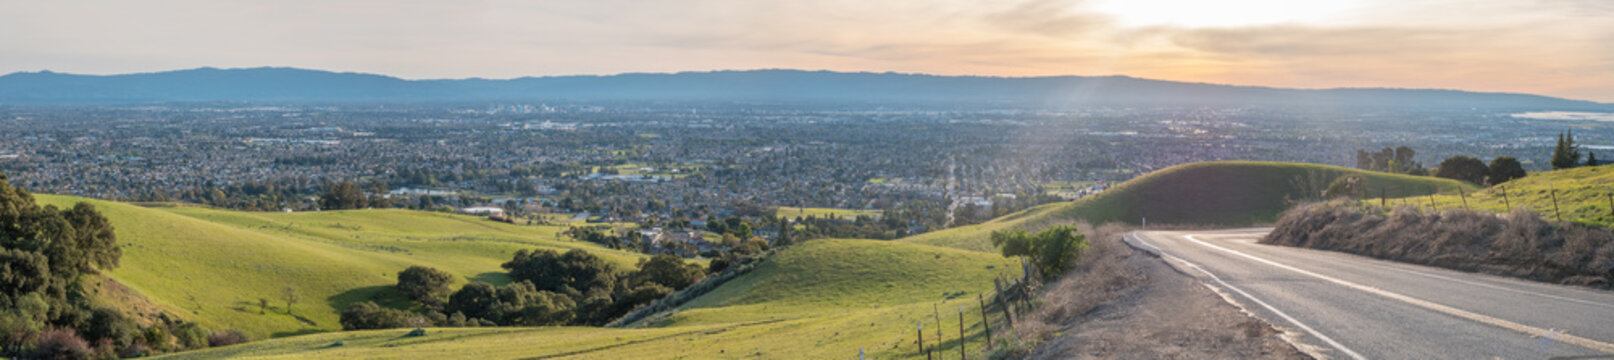 Curving Road And Downhill to Silicon Valley